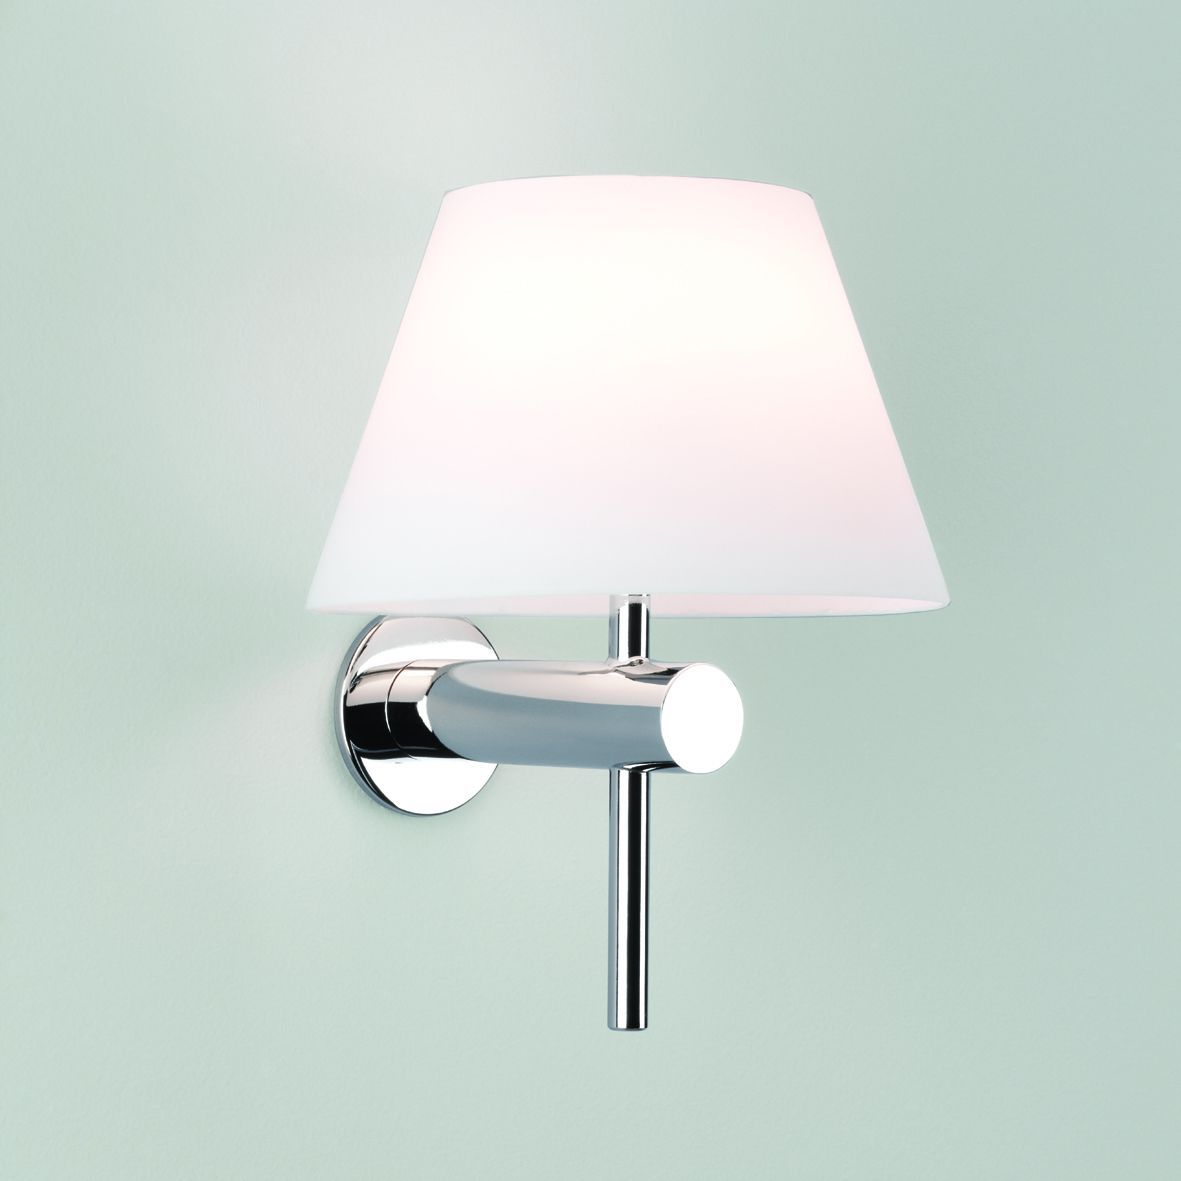 Bathroom Wall Light Fixtures Uk bathroom lights uk | pinterdor | pinterest | bathroom wall lights